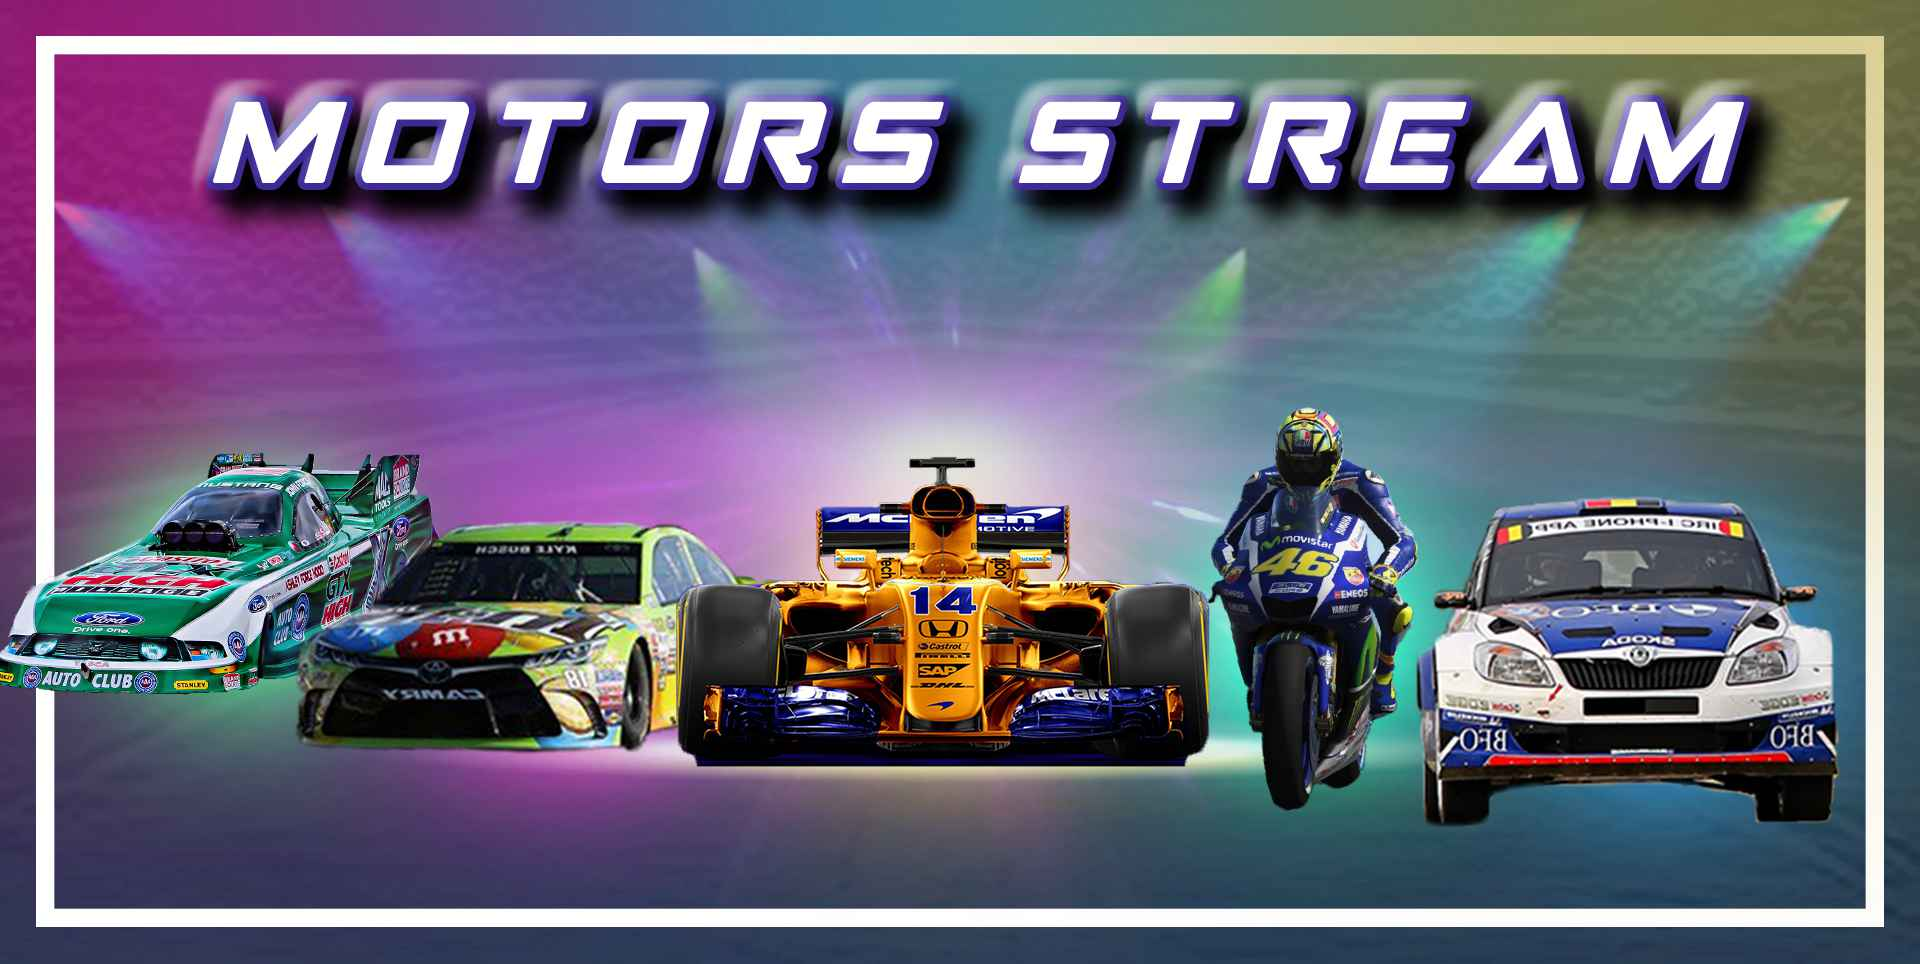 Live Qatar Motorcycle Grand Prix 2018 Stream